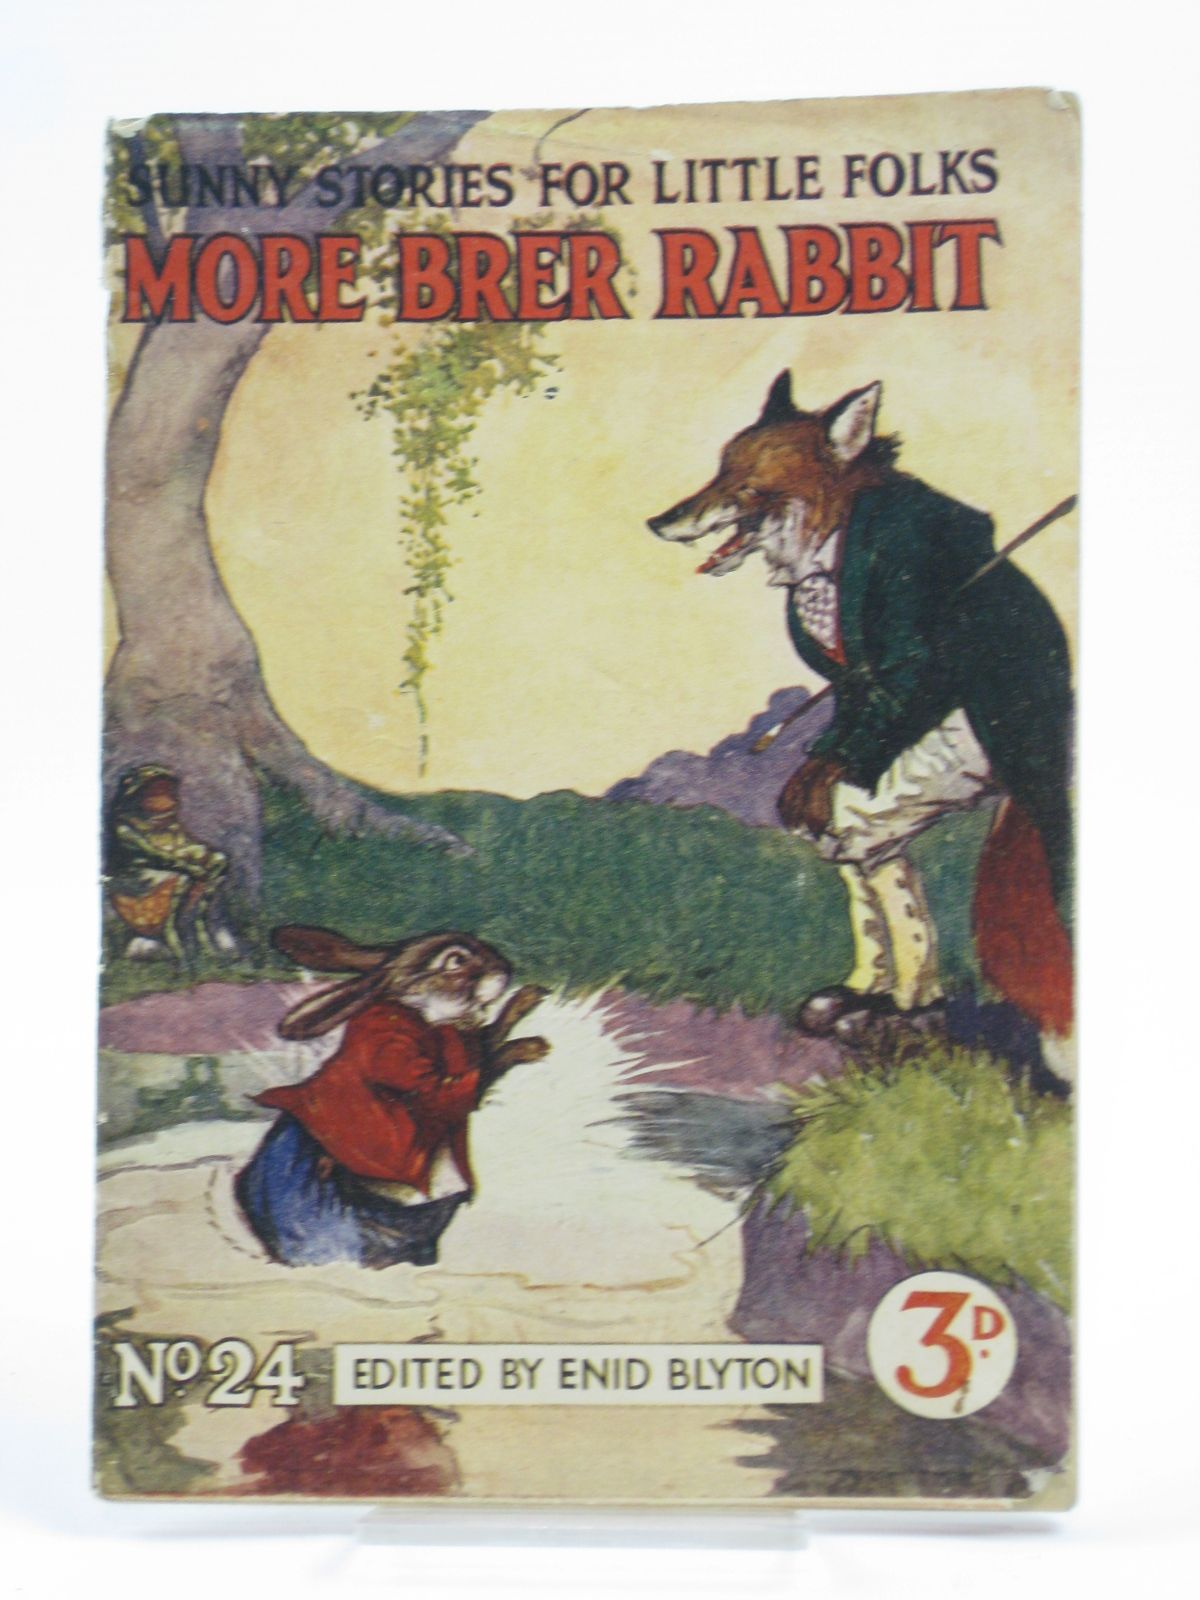 Photo of SUNNY STORIES FOR LITTLE FOLKS No. 24 MORE BRER RABBIT written by Blyton, Enid illustrated by Aris, Ernest A. published by George Newnes Ltd. (STOCK CODE: 1406177)  for sale by Stella & Rose's Books